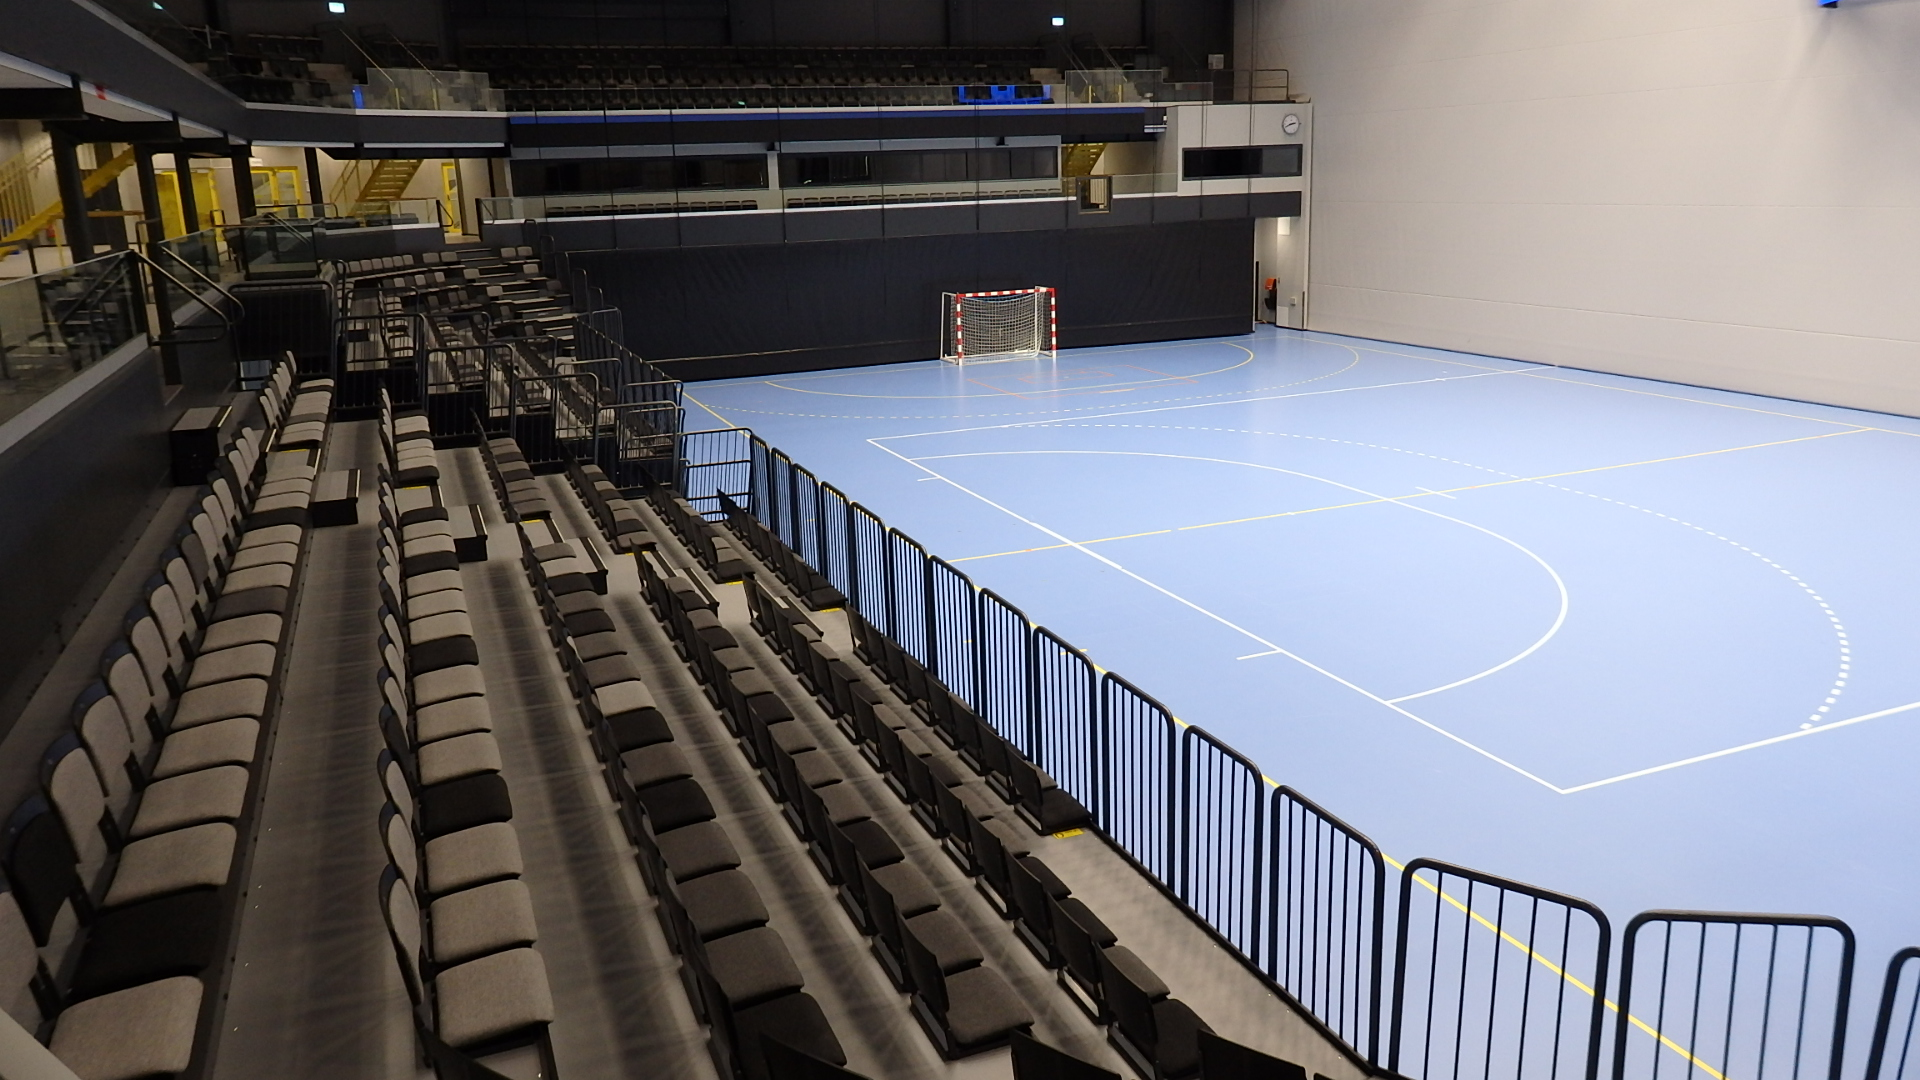 telescopic seating arena seating sports flooring floor covering unisport